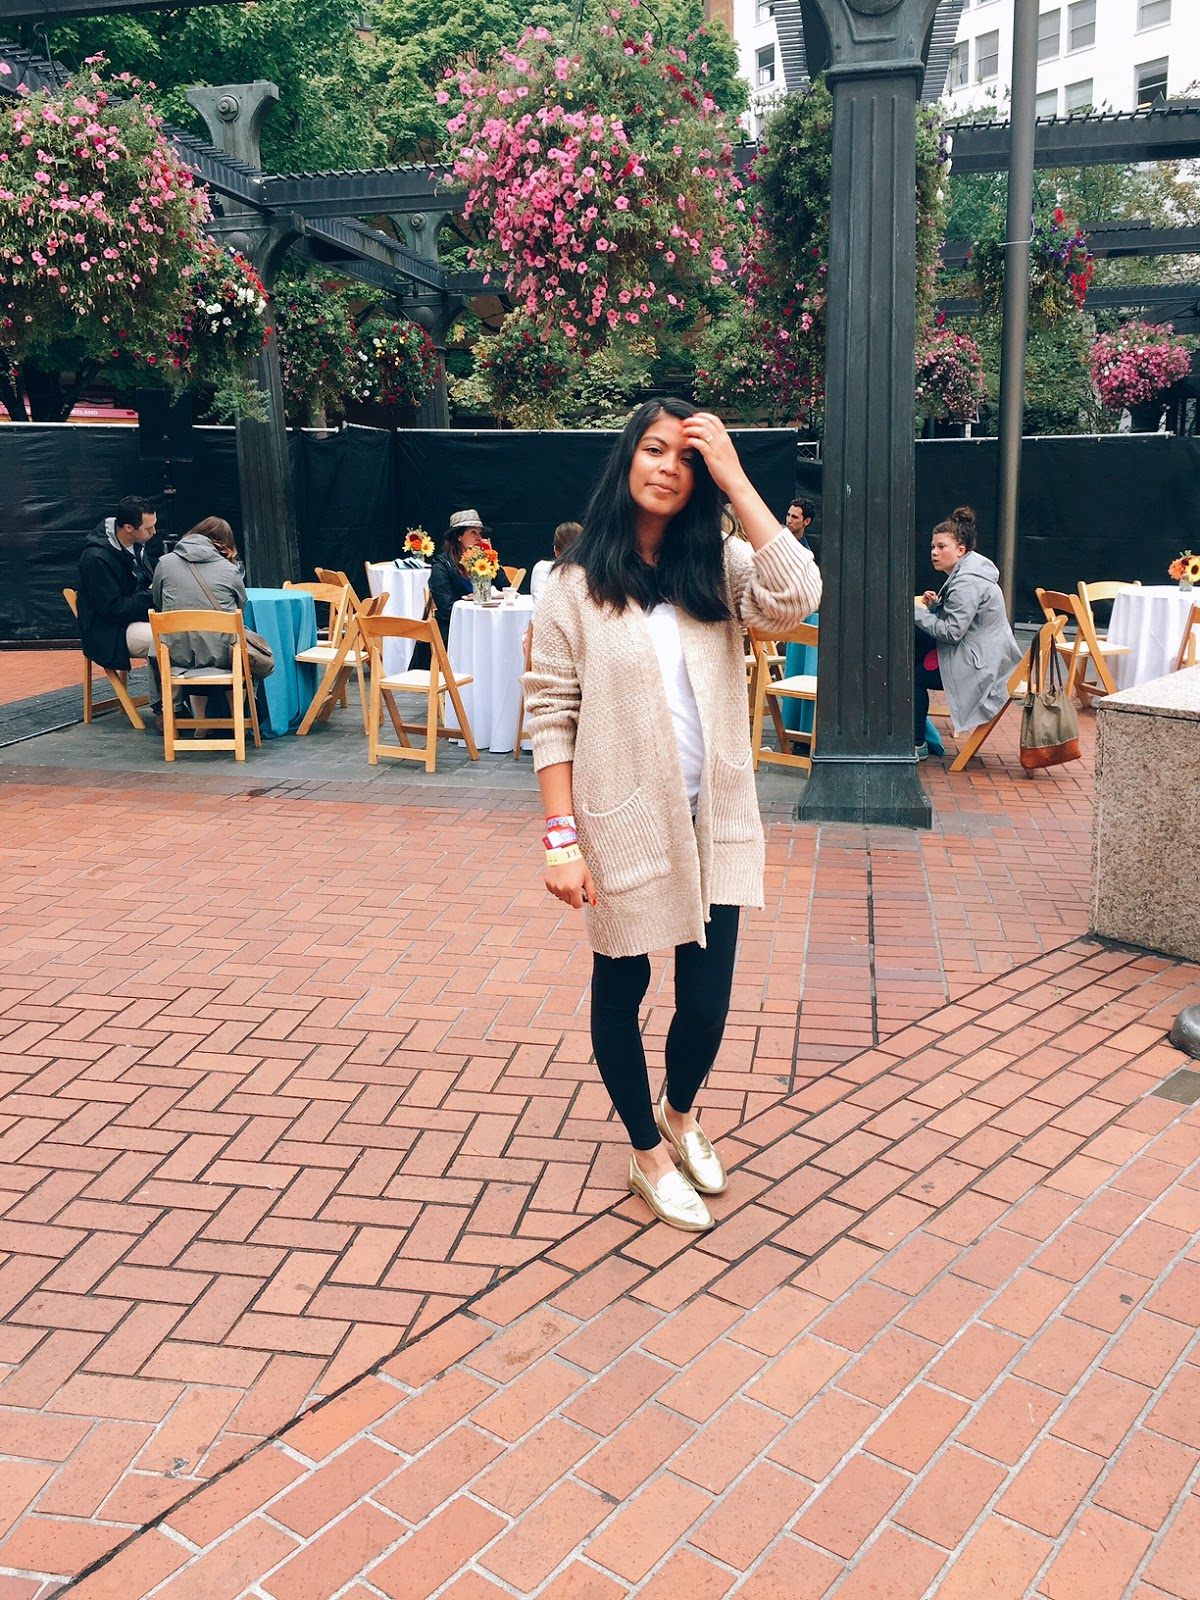 affordable fashion, dressing for occasions, fashion blogger, on the blog, portland blogger, portland event, sammydress, sammydress review, thirty bucks,